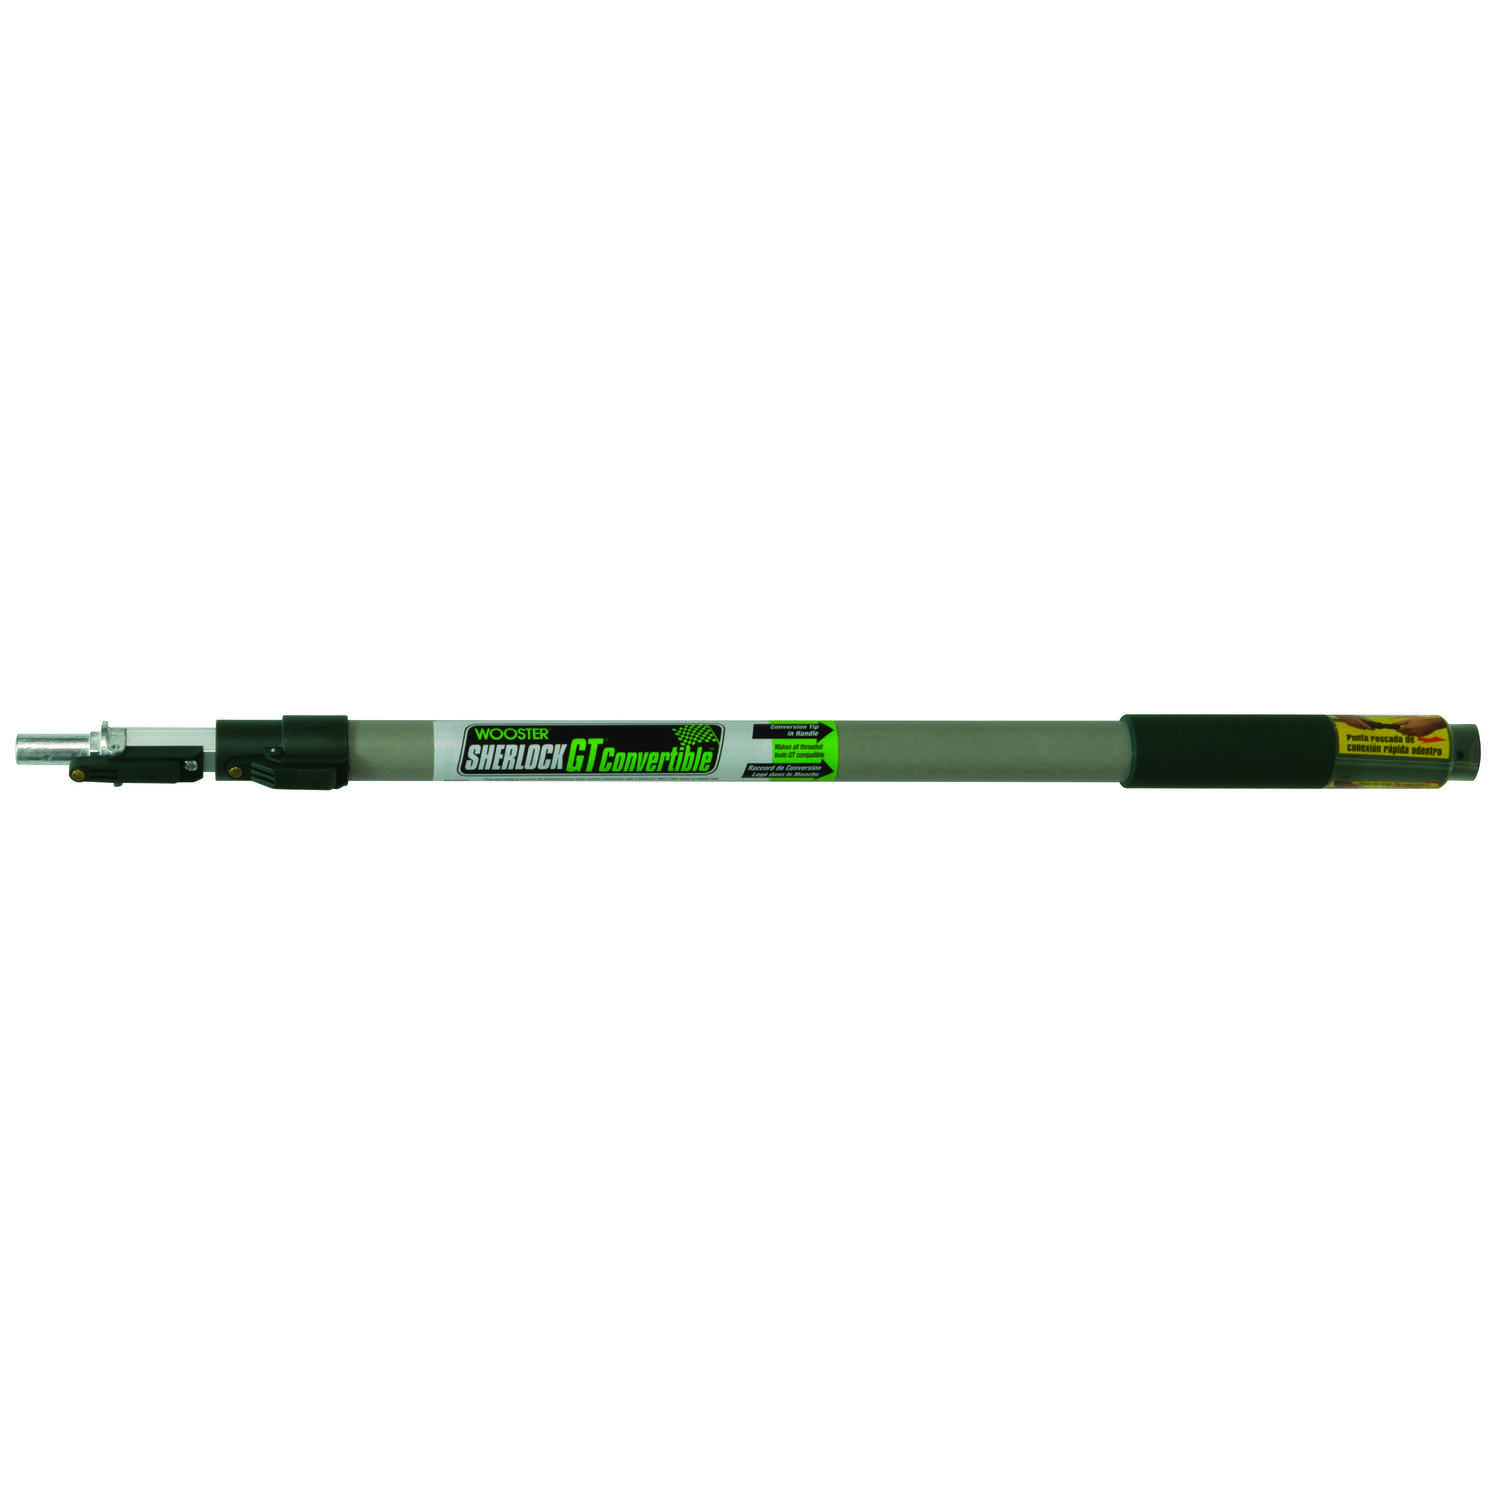 Wooster  Sherlock  Telescoping 1 in. Dia. x 2-4 ft. L Aluminum  Black/White  Extension Pole